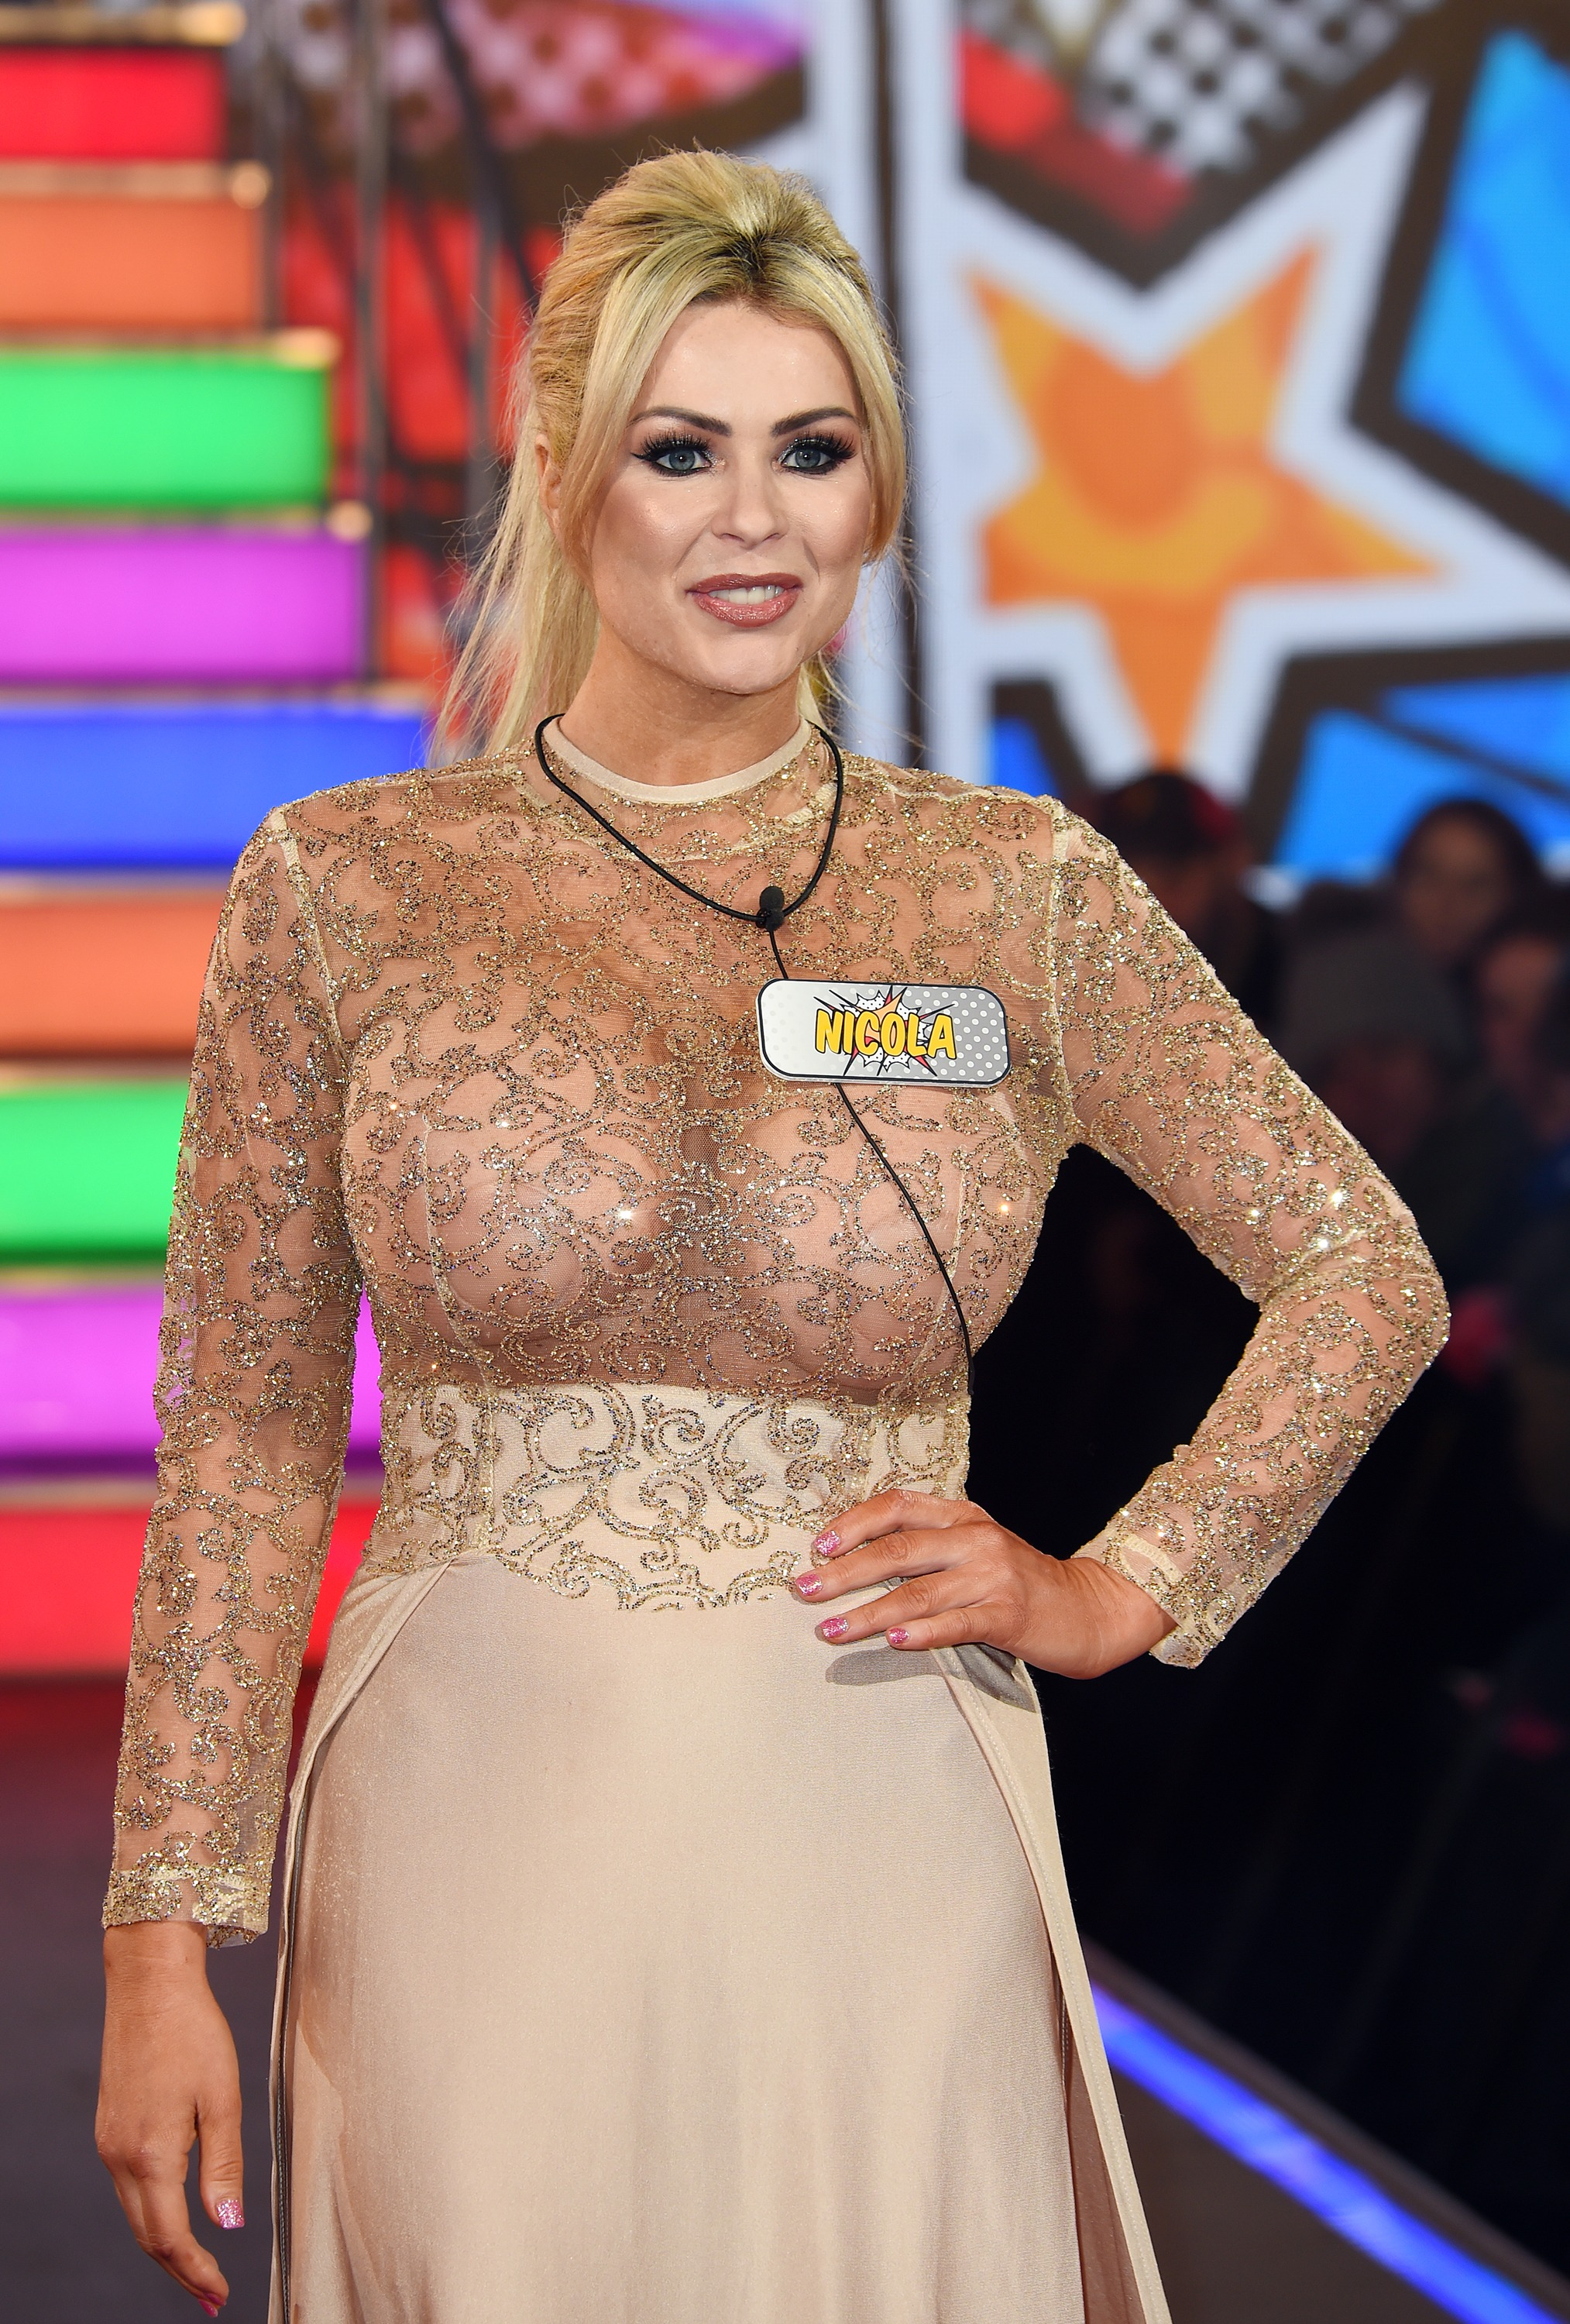 Nicola McLean at Celebrity Big Brother - Contestan